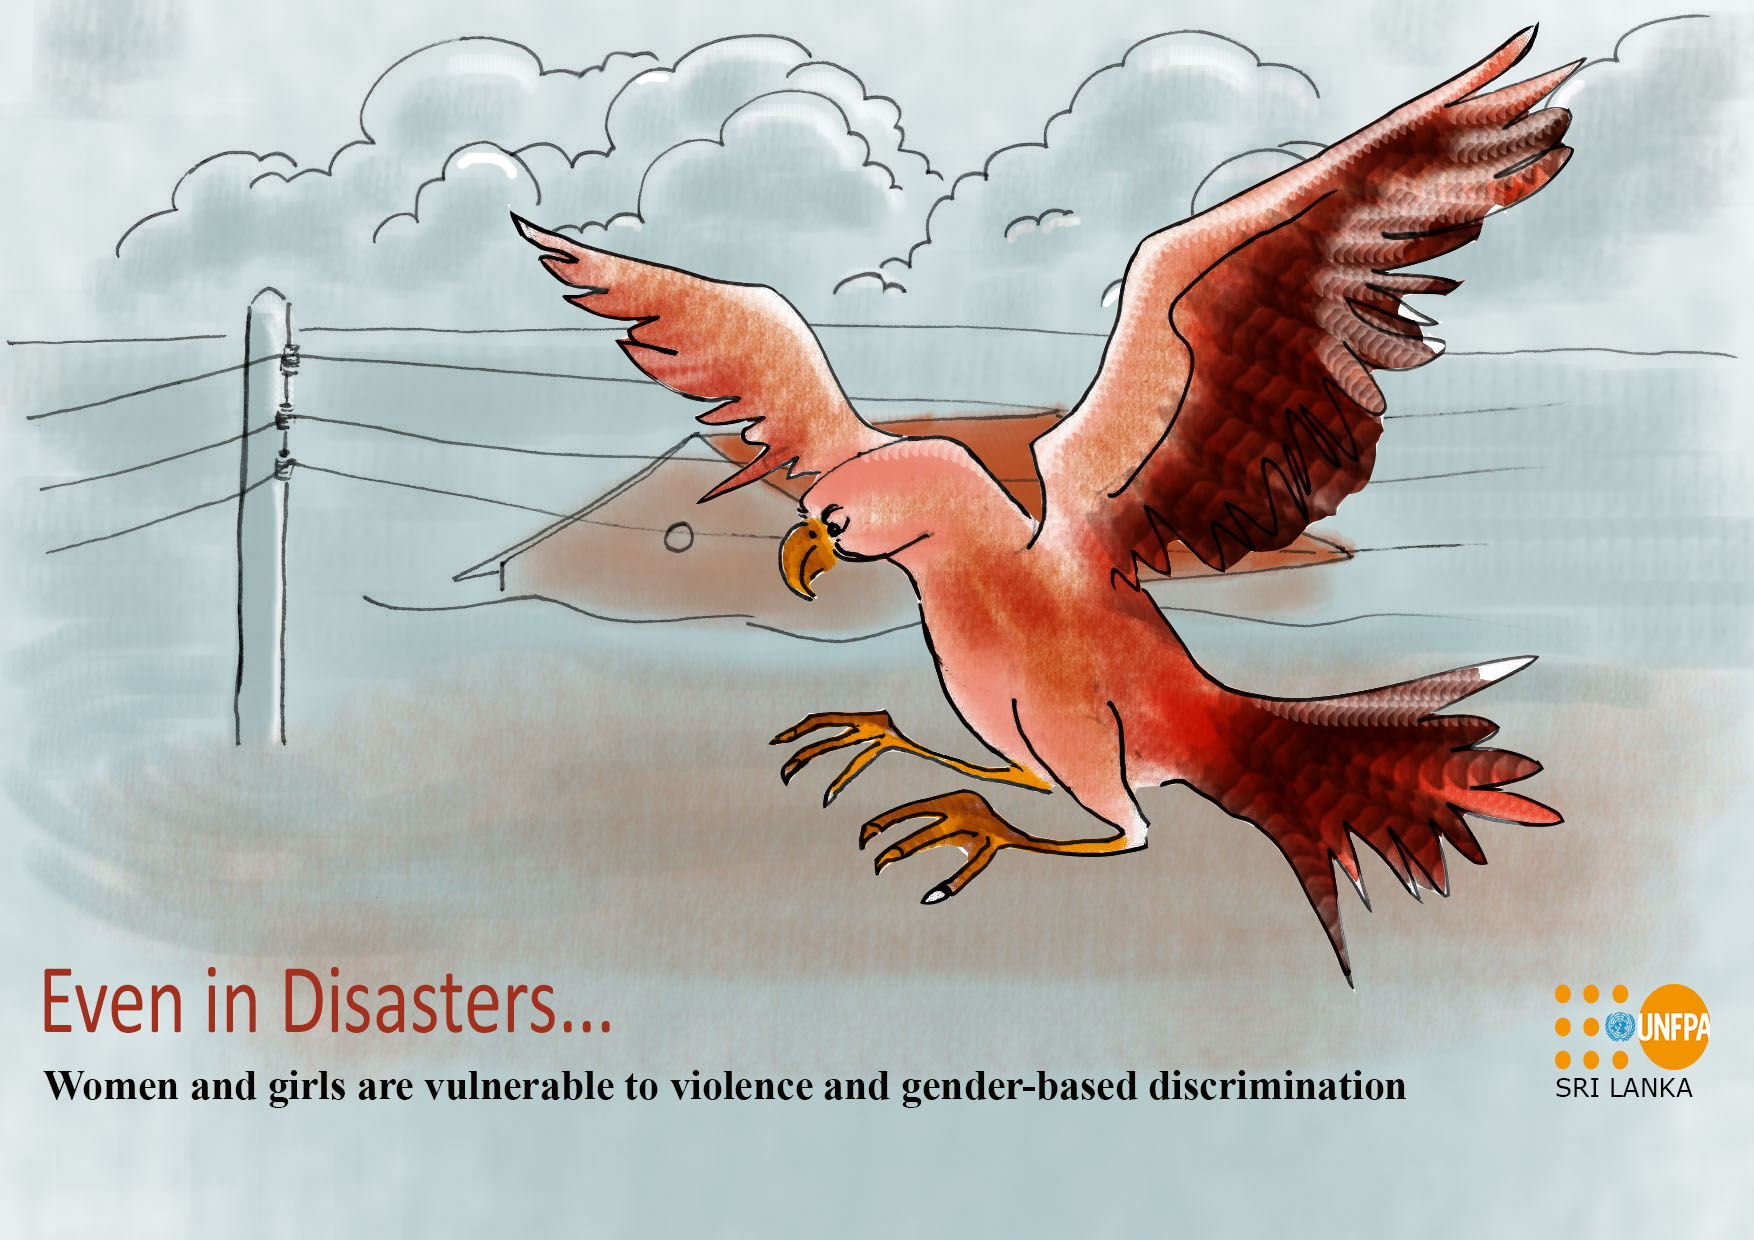 GBV increases during disasters